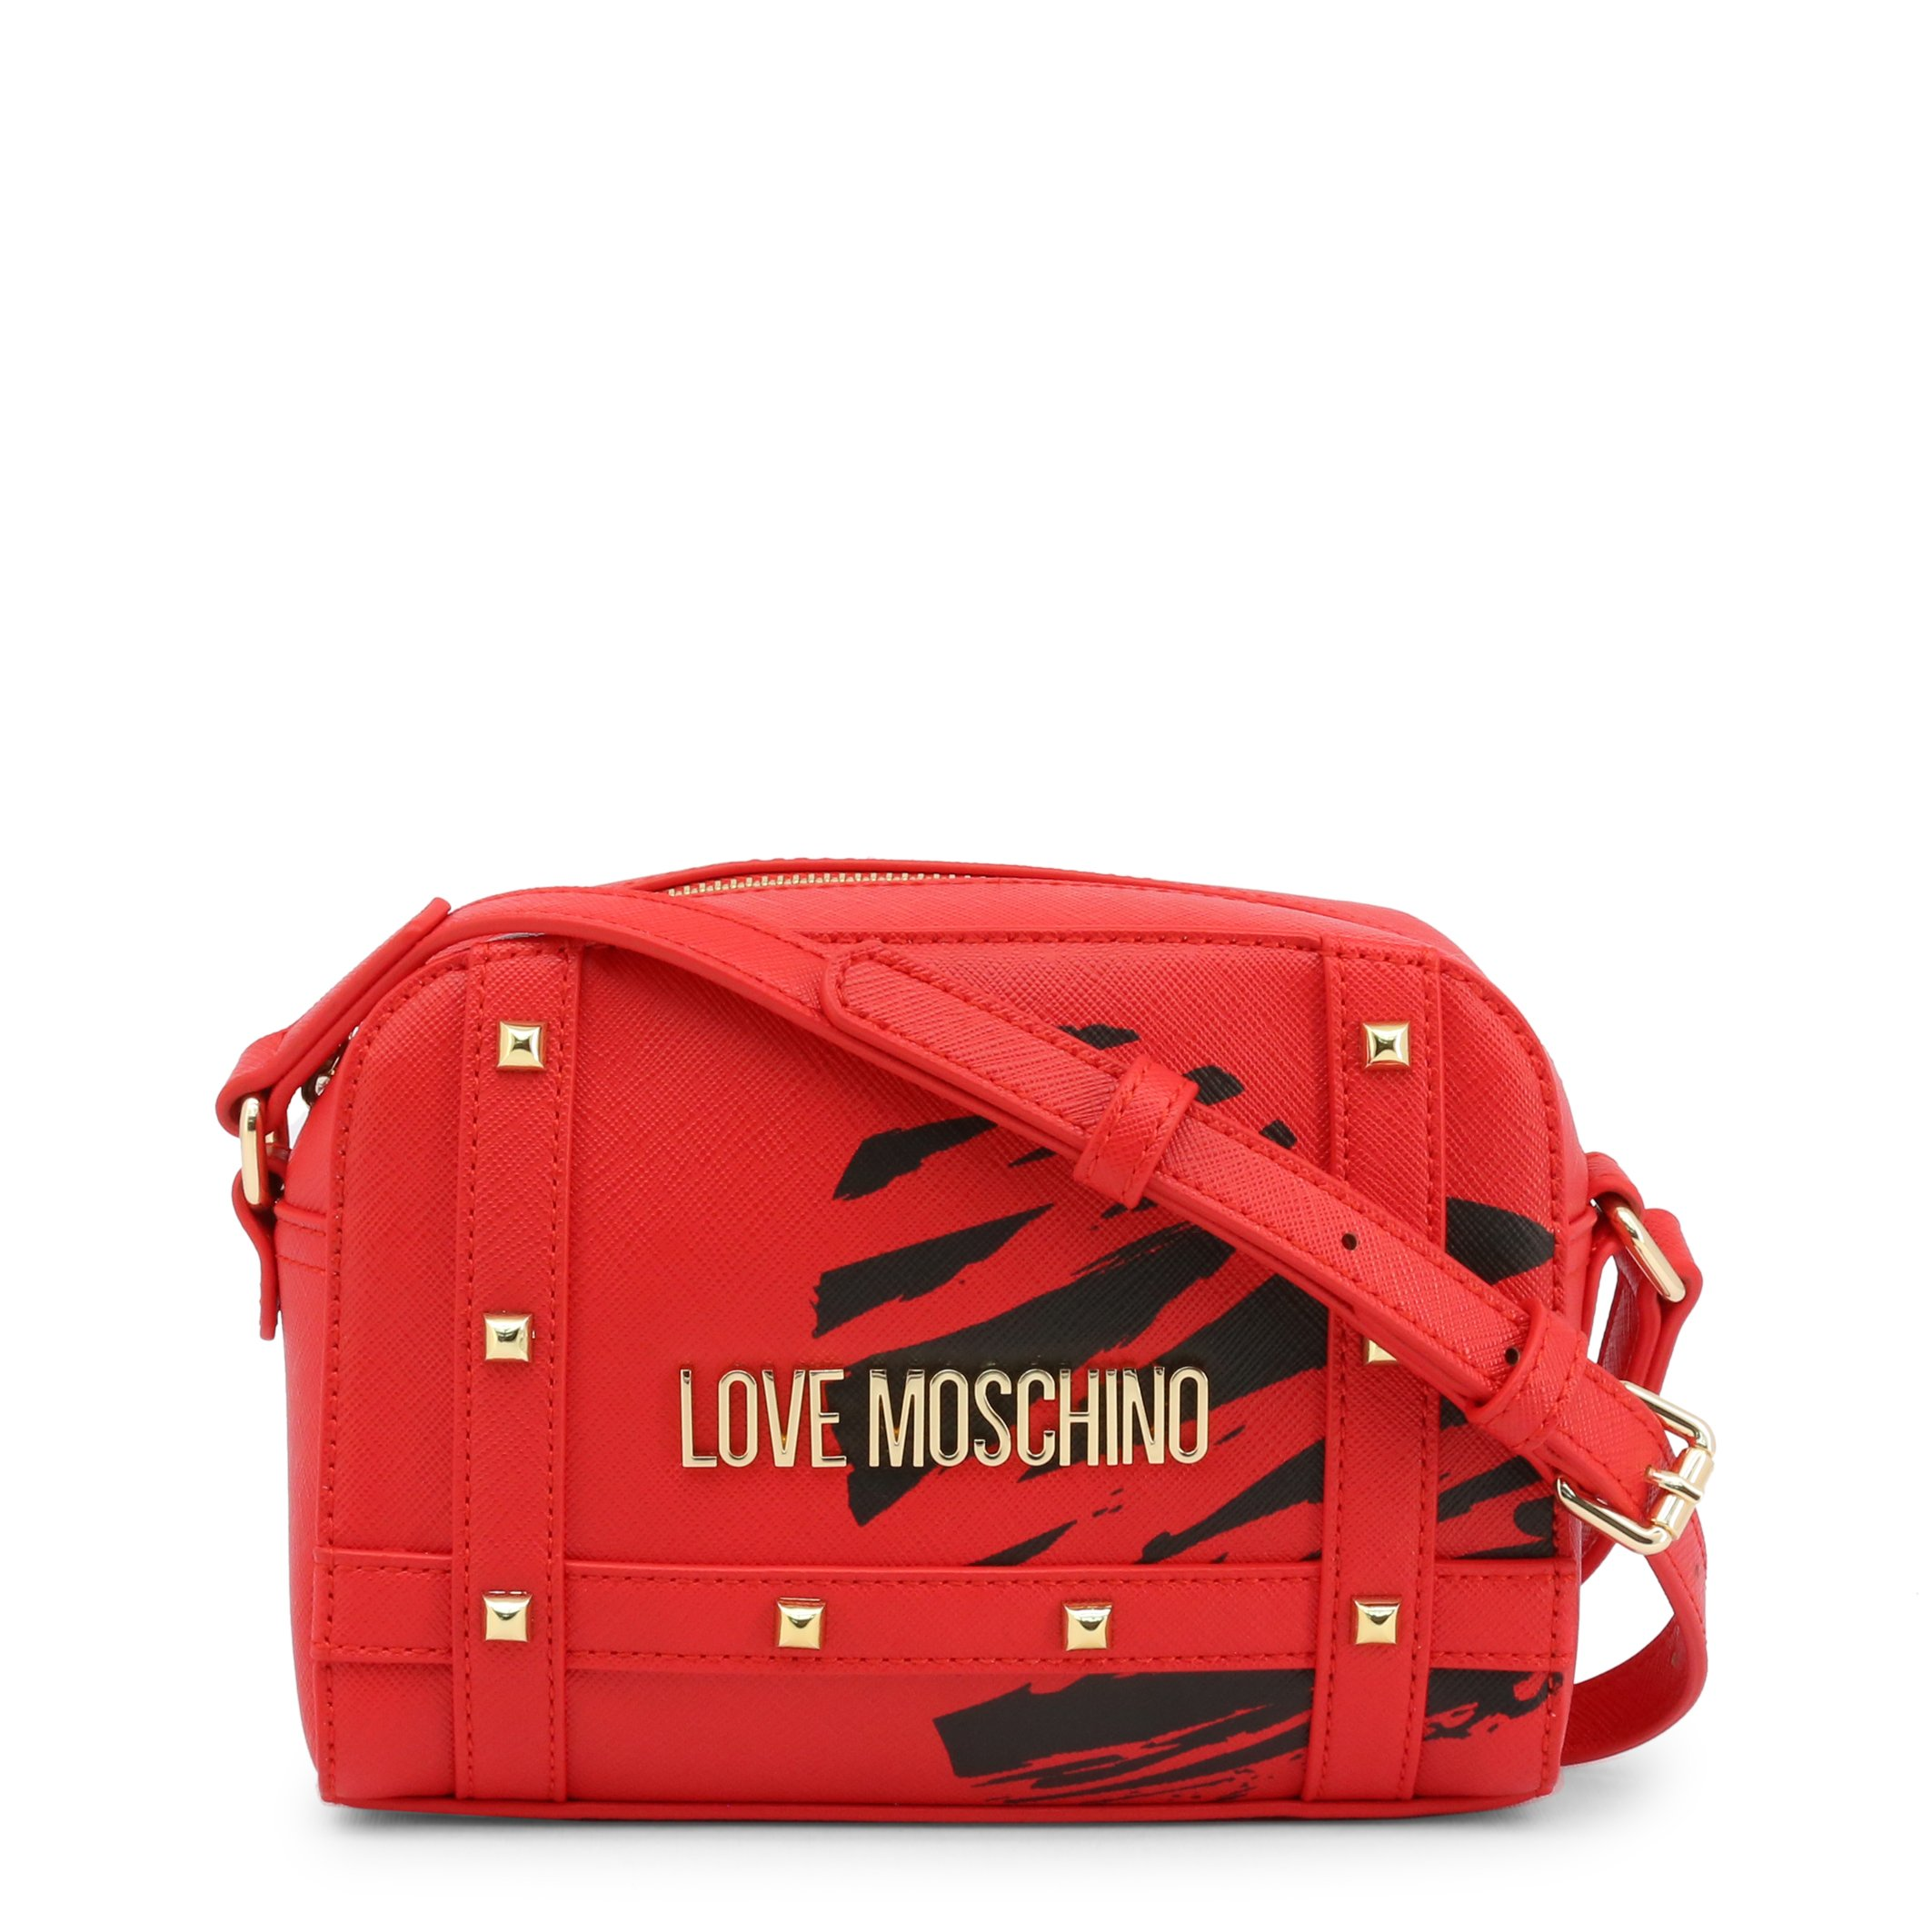 Love Moschino Women's Crossbody Bag Various Colours JC4074PP1CLG1 - red NOSIZE